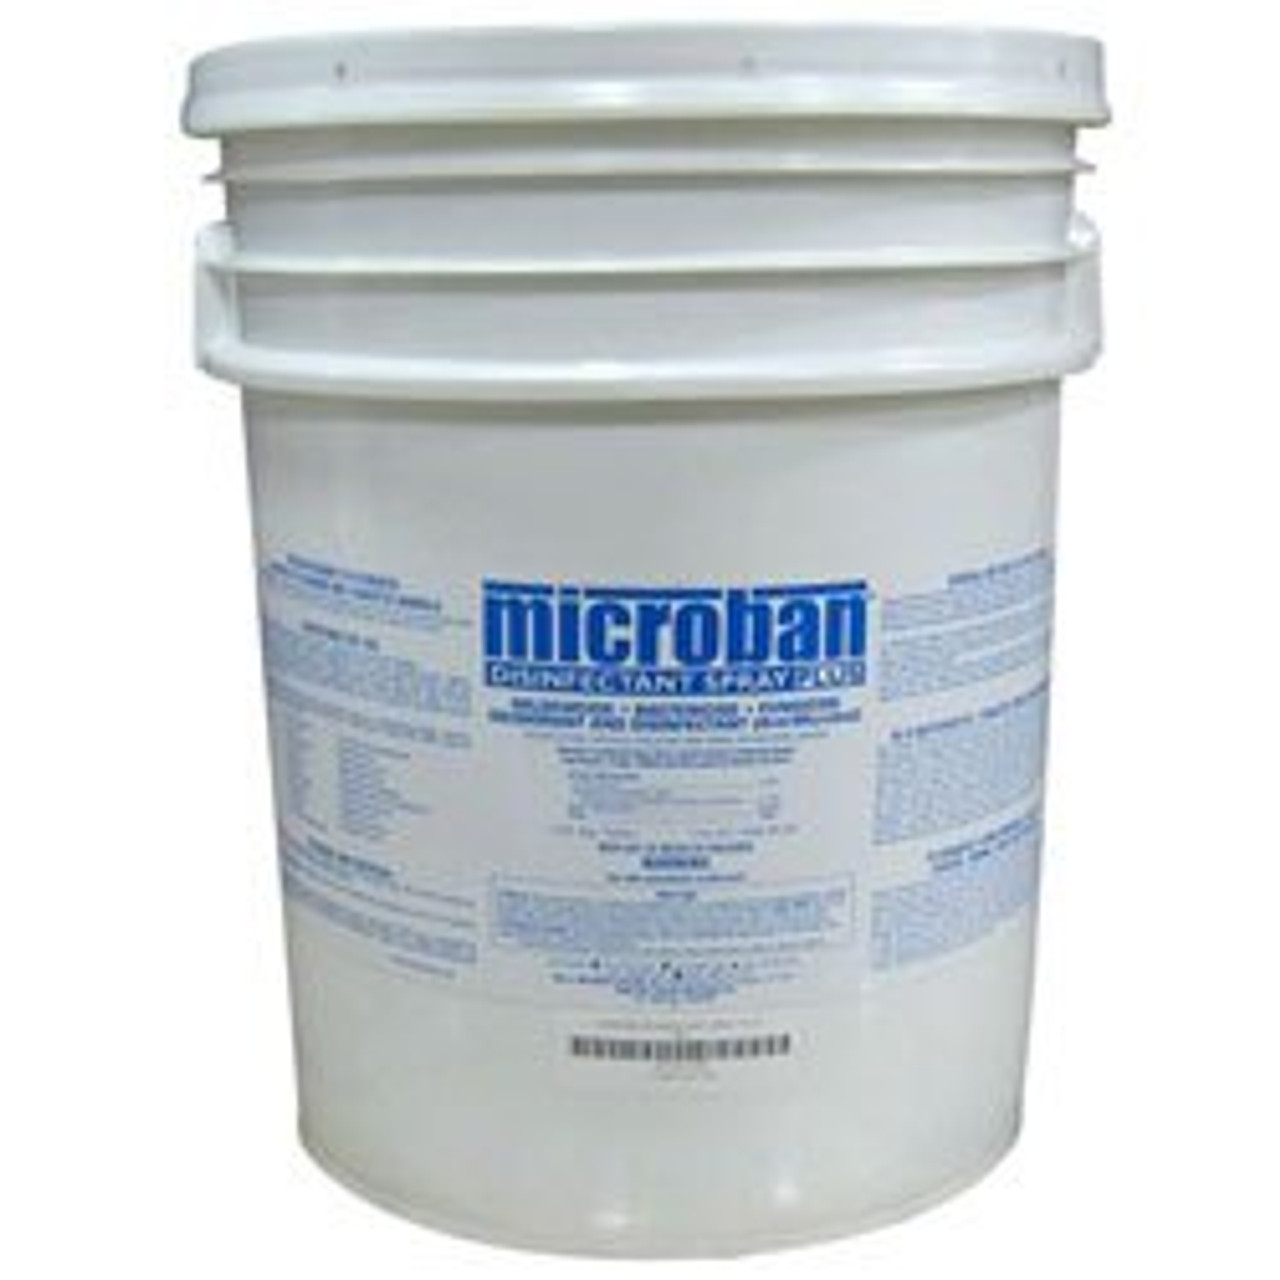 Mediclean was formerly Microban